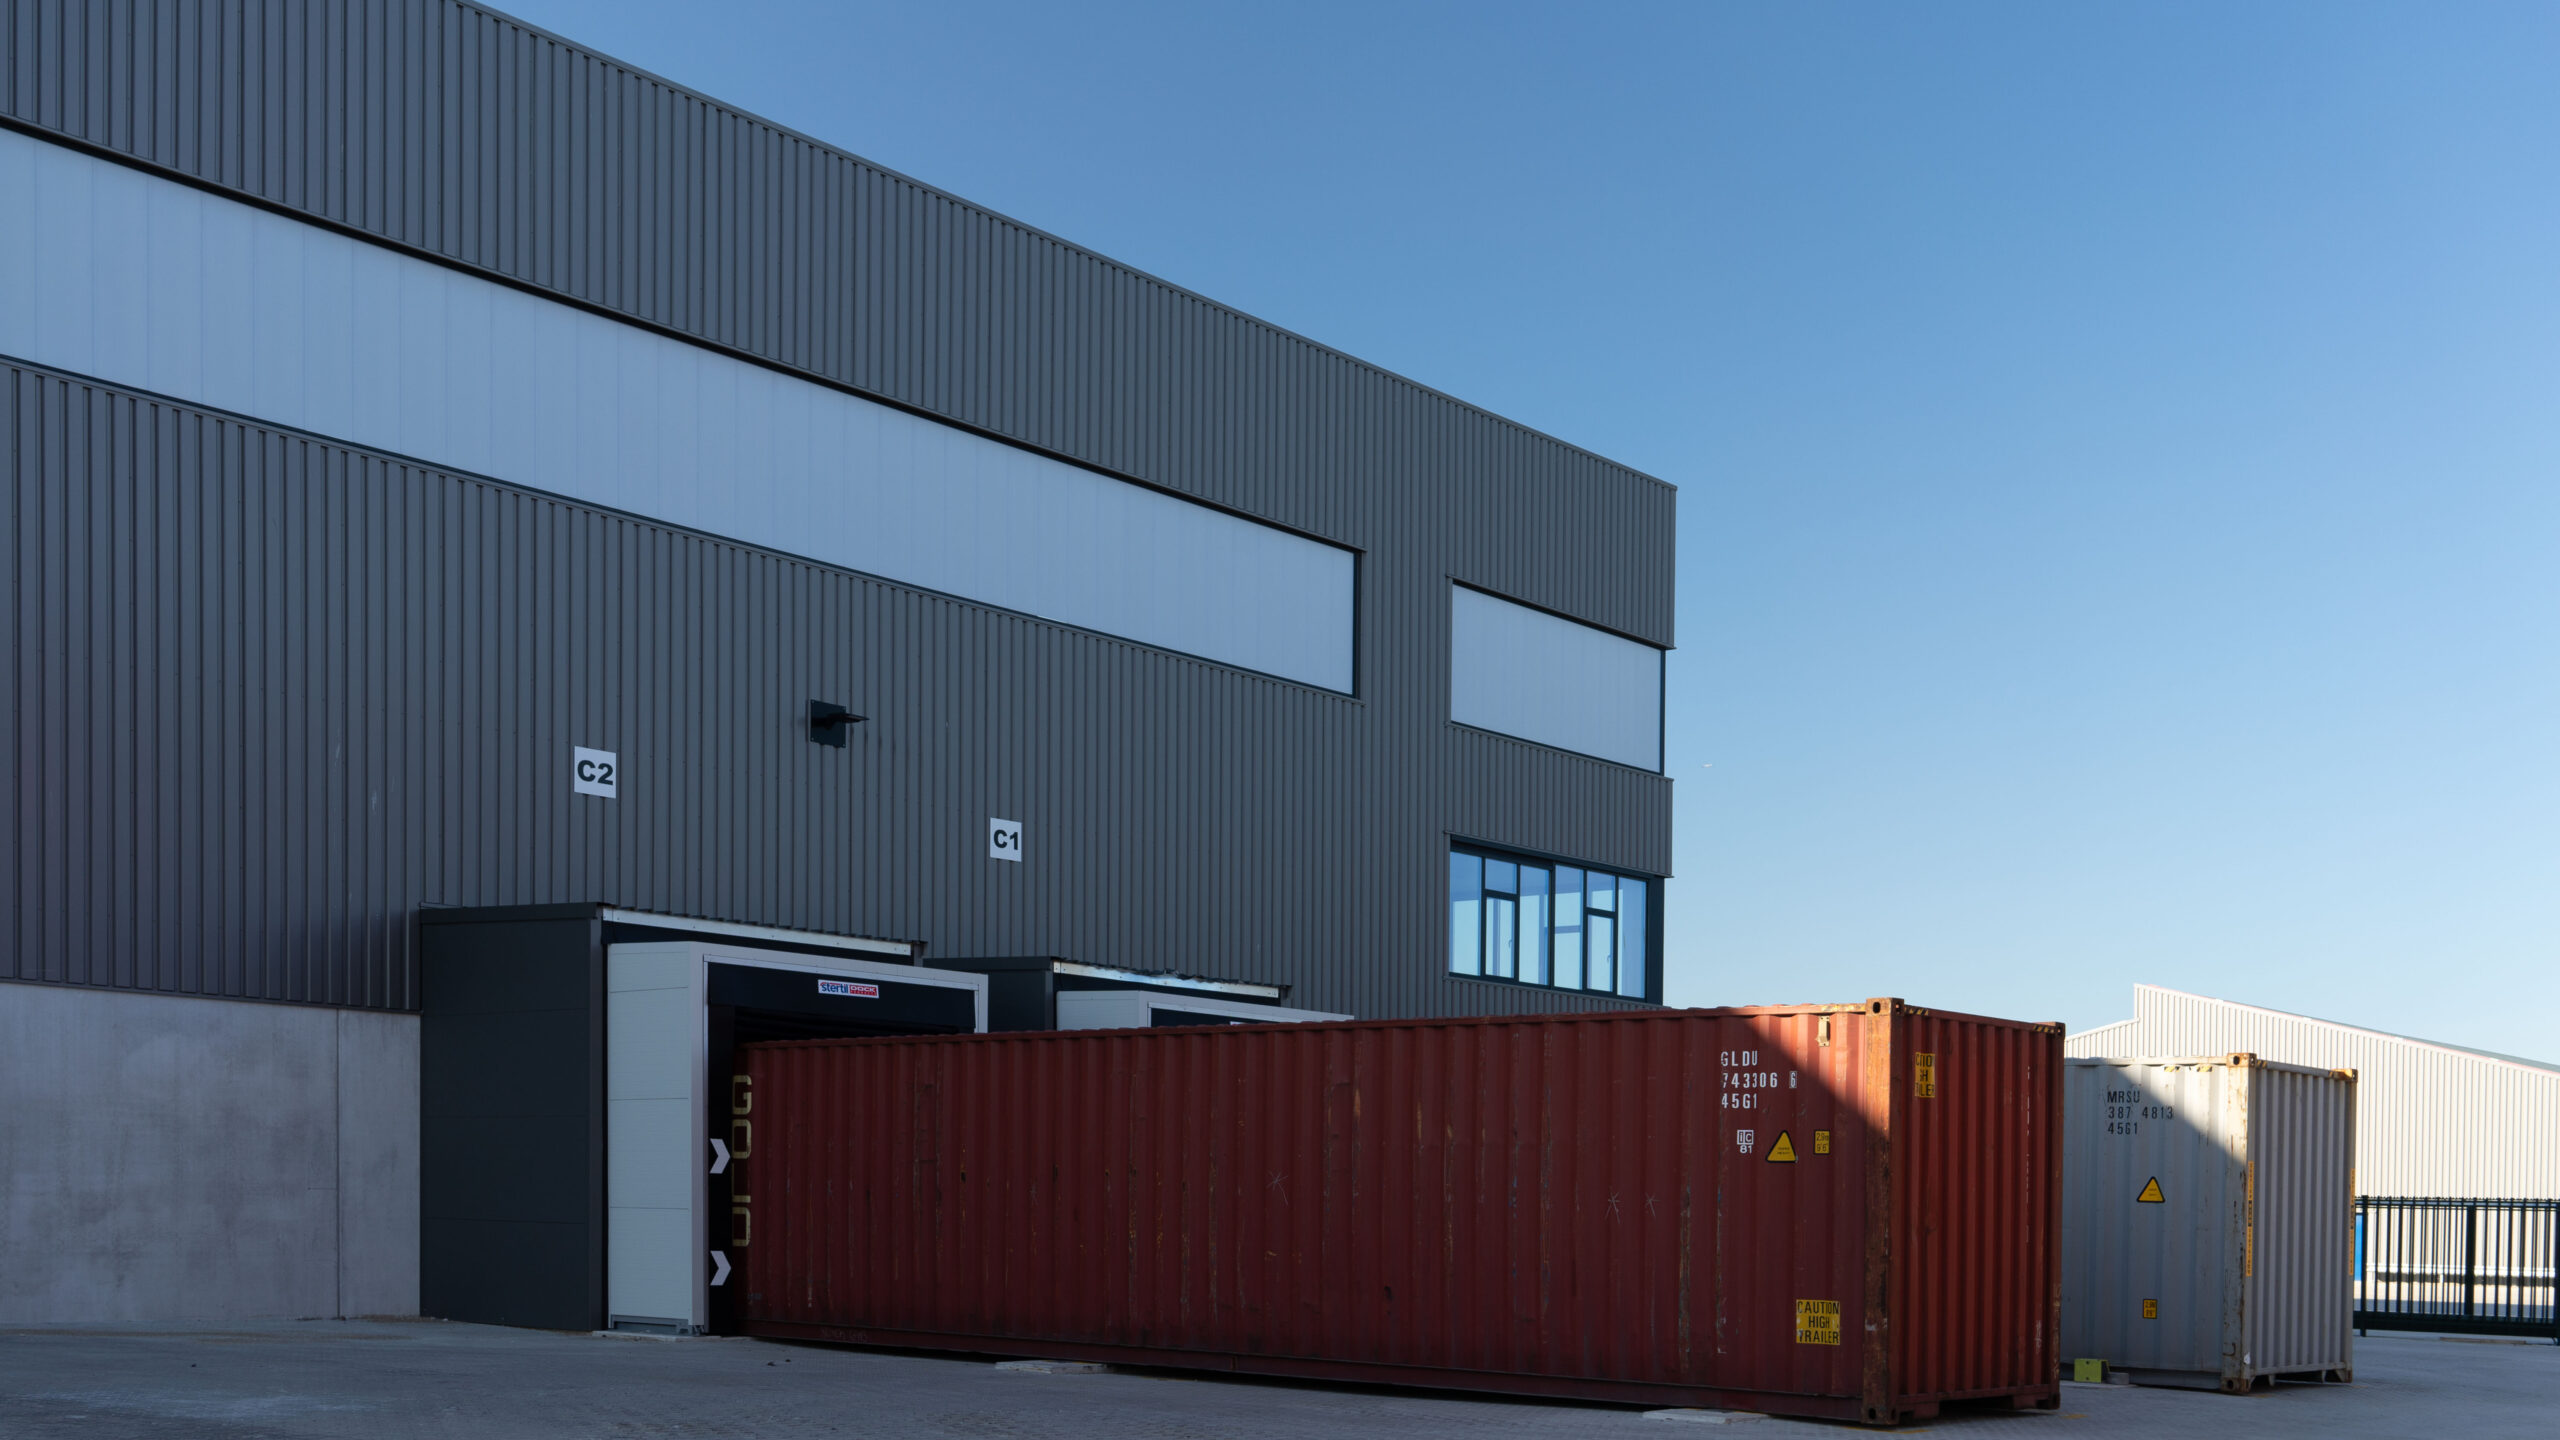 Containers snel laden/lossen